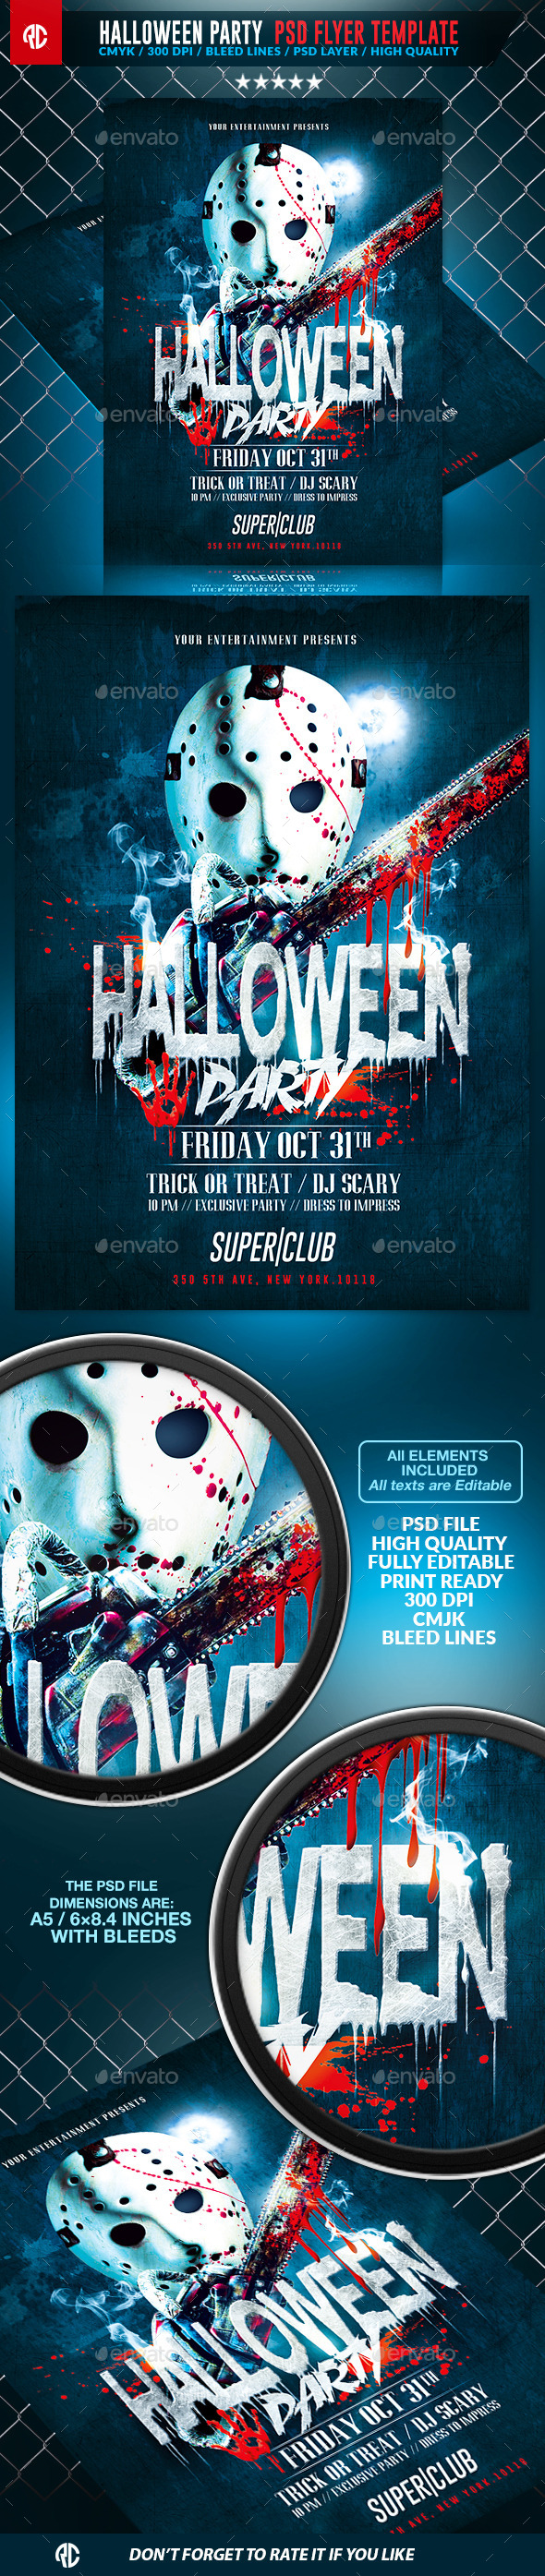 Halloween Scary Party Psd Flyer Template